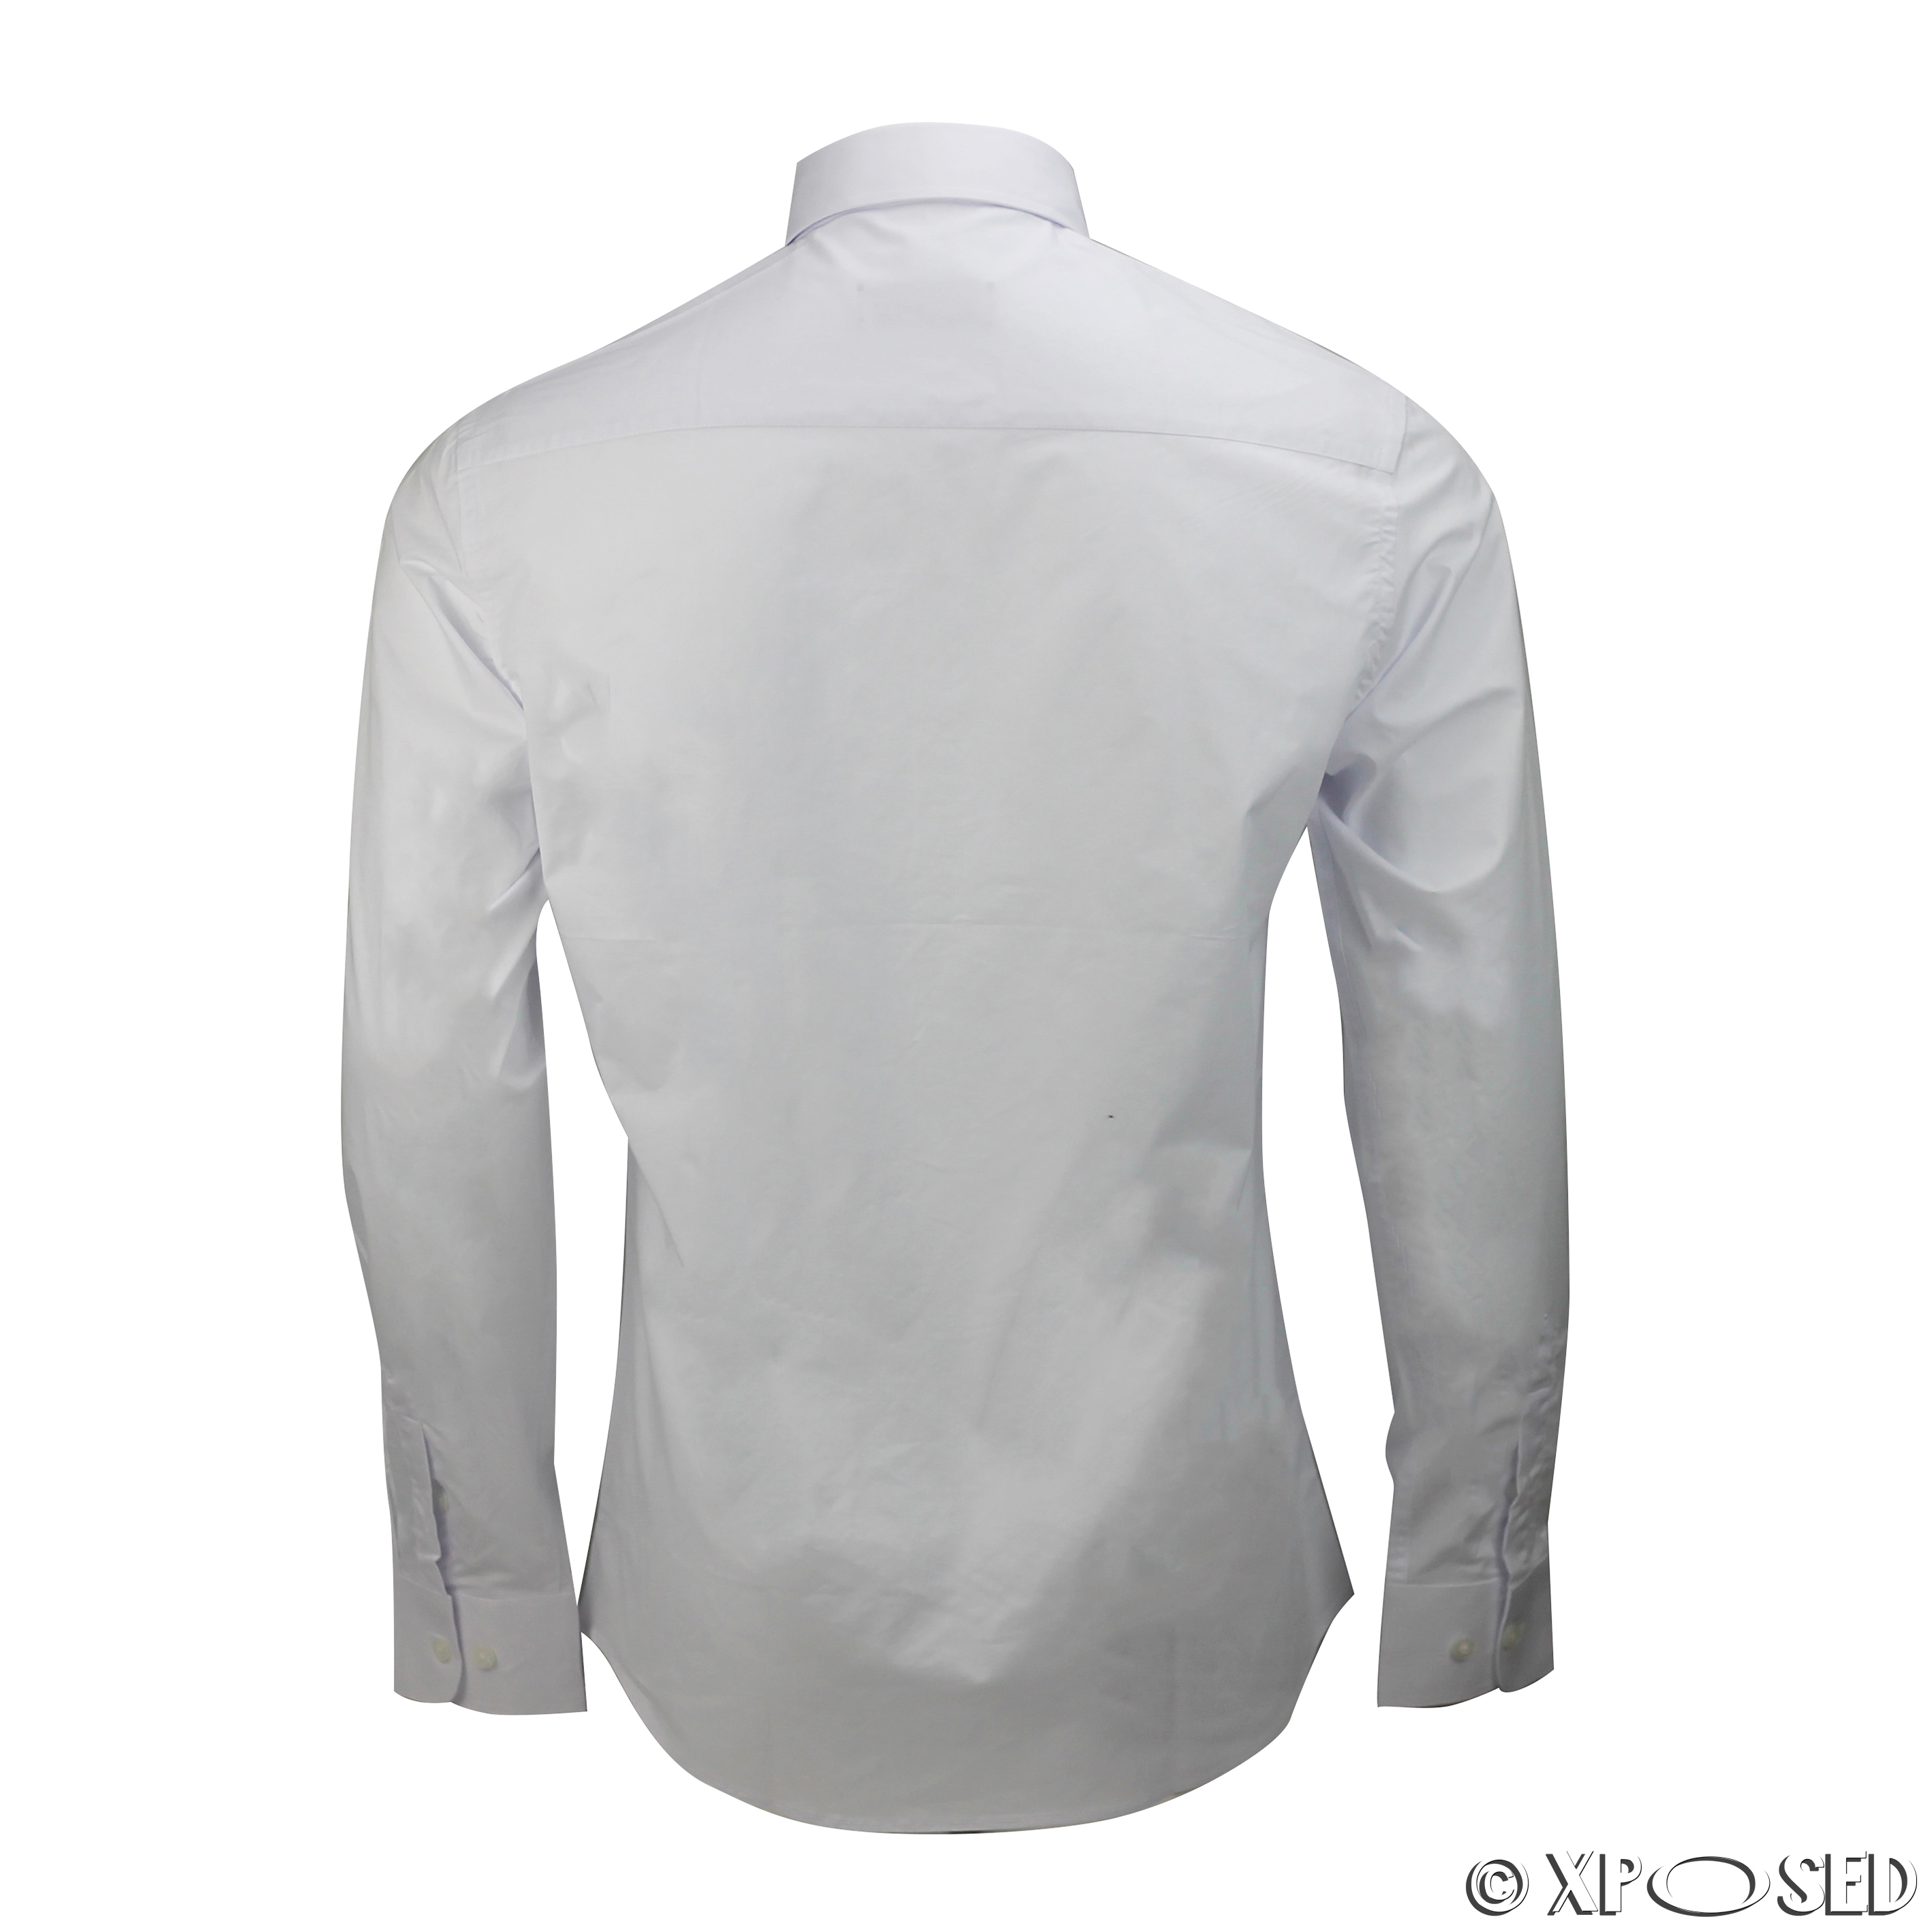 Black t shirt white collar - Mens Shirt Slim Fit White Black Pin Collar